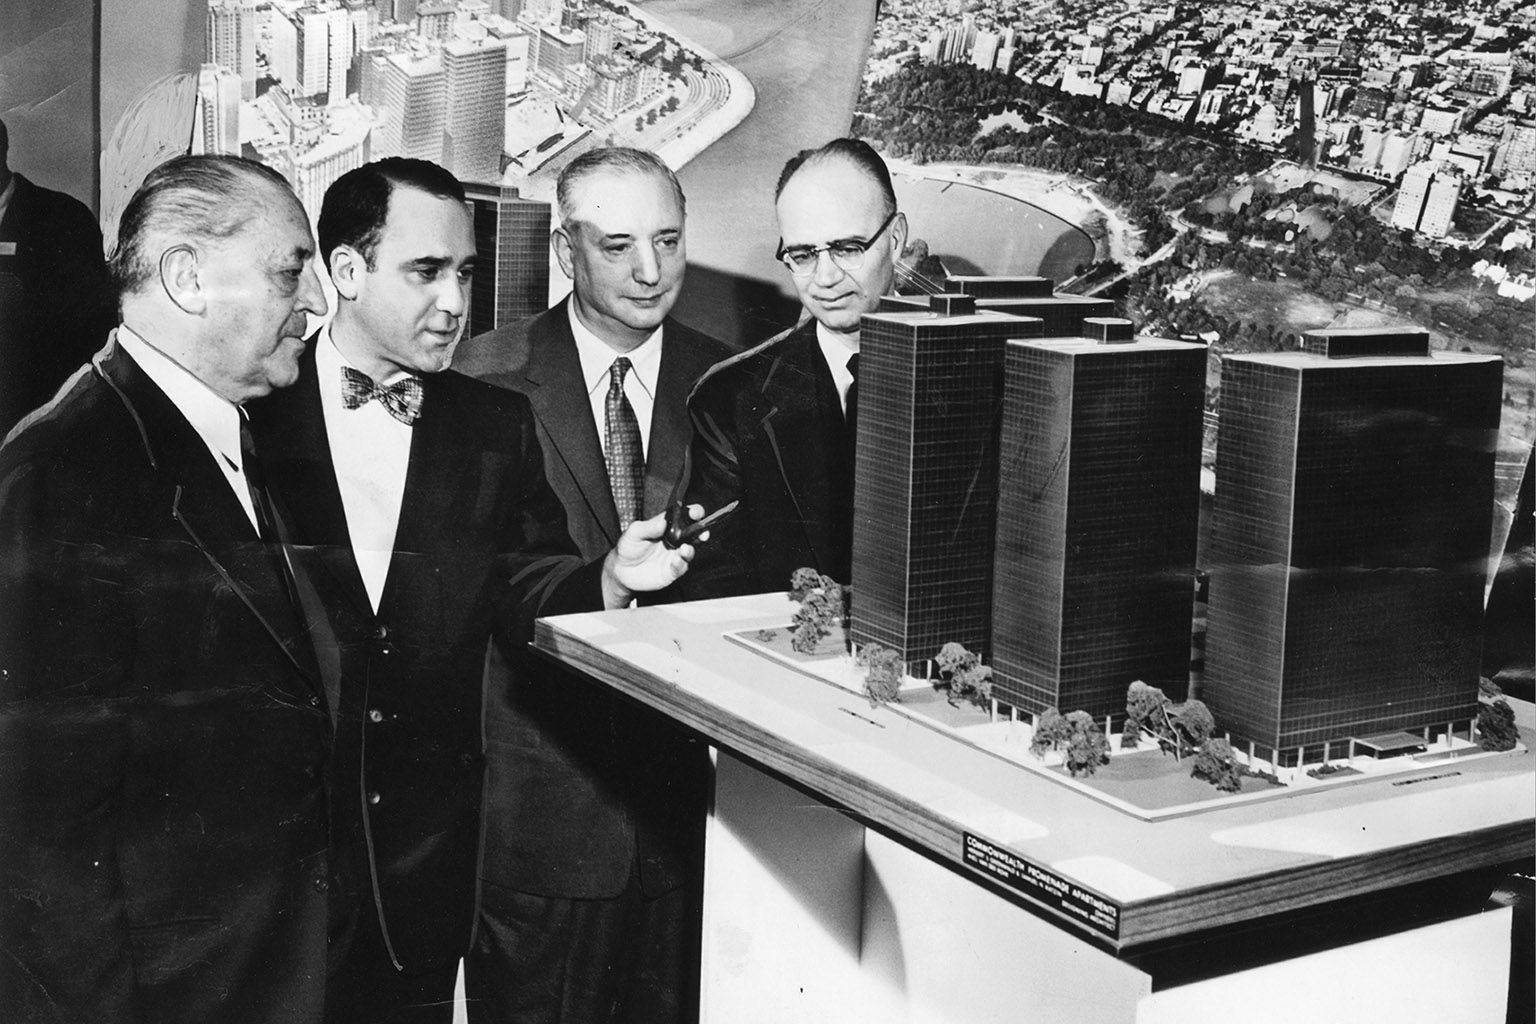 "Model of Commonwealth Promenade, Chicago. Left to right are Mies van der Rohe, Herbert Greenwald, Samuel Katzin, and Maurice Nelson. ""Six Apartment Buildings Set on Northside,"" Chicago Tribune, March 15, 1955, B7. © Chicago Tribune. All rights reserved. Used by permission."